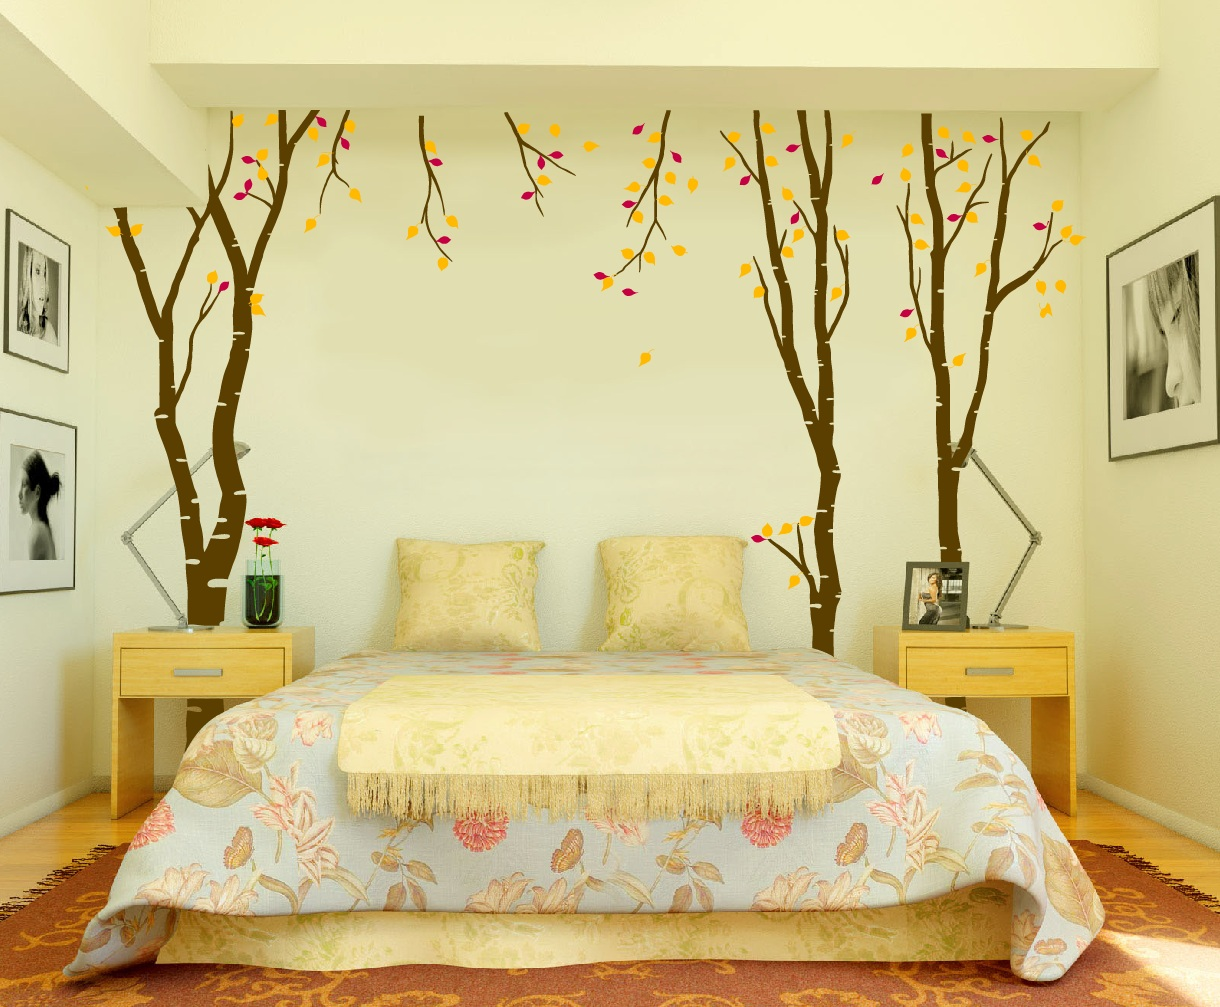 Large wall birch tree decal forest kids vinyl sticker removable birch tree wall decal with leaves bedroom decor amipublicfo Choice Image